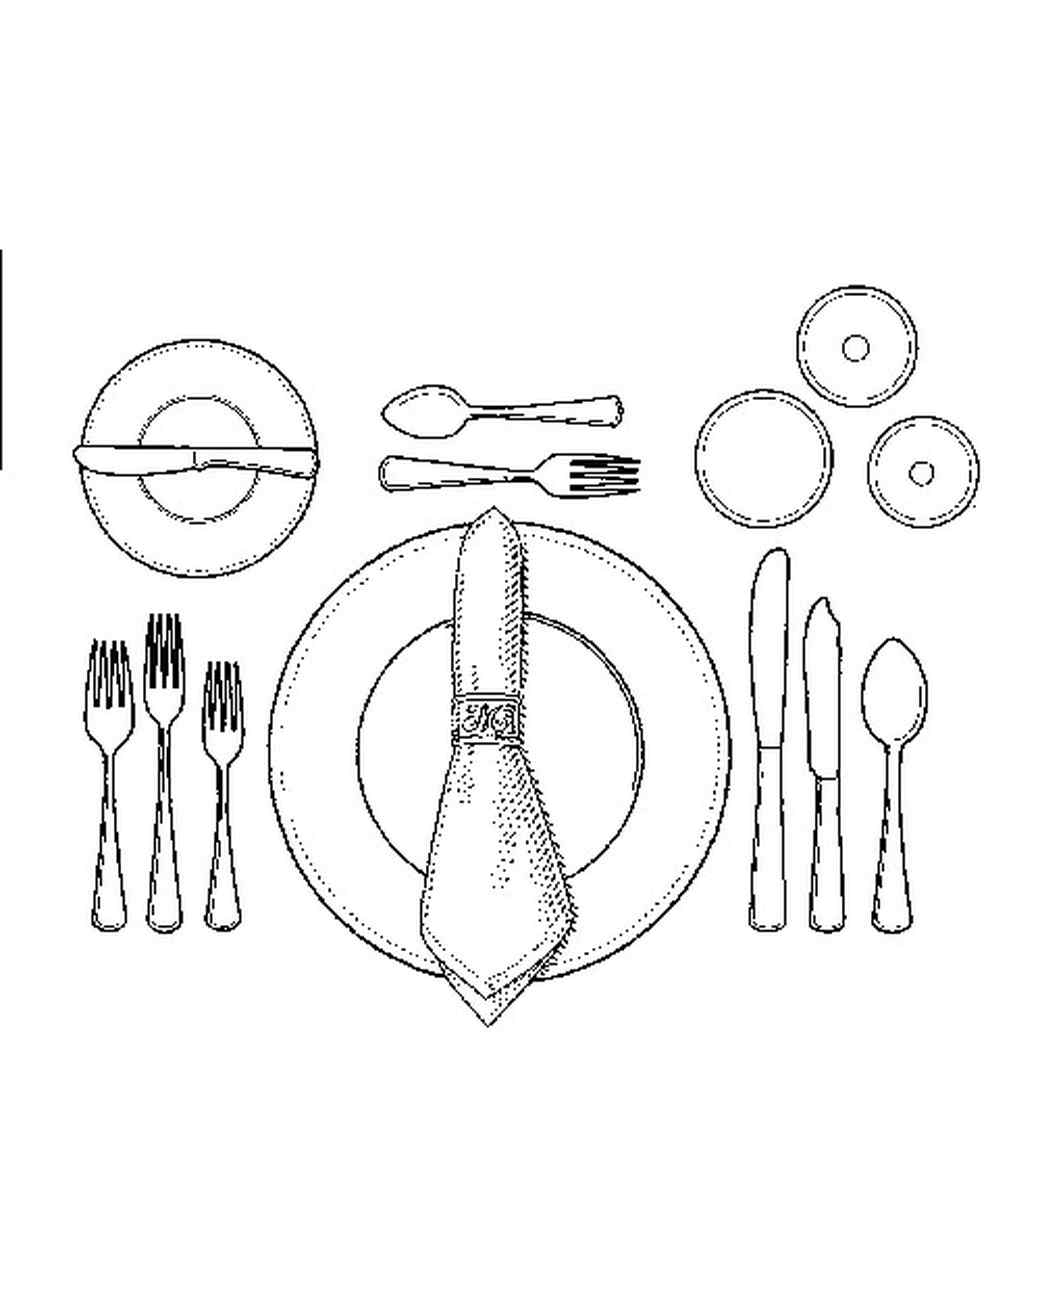 Glamorous Proper Place Setting Of Silverware Pictures - Best Image ... Glamorous Proper Place Setting Of Silverware Pictures Best Image  sc 1 st  Best Image Engine & Marvelous Formal Table Setting Silverware Photos - Best Image Engine ...